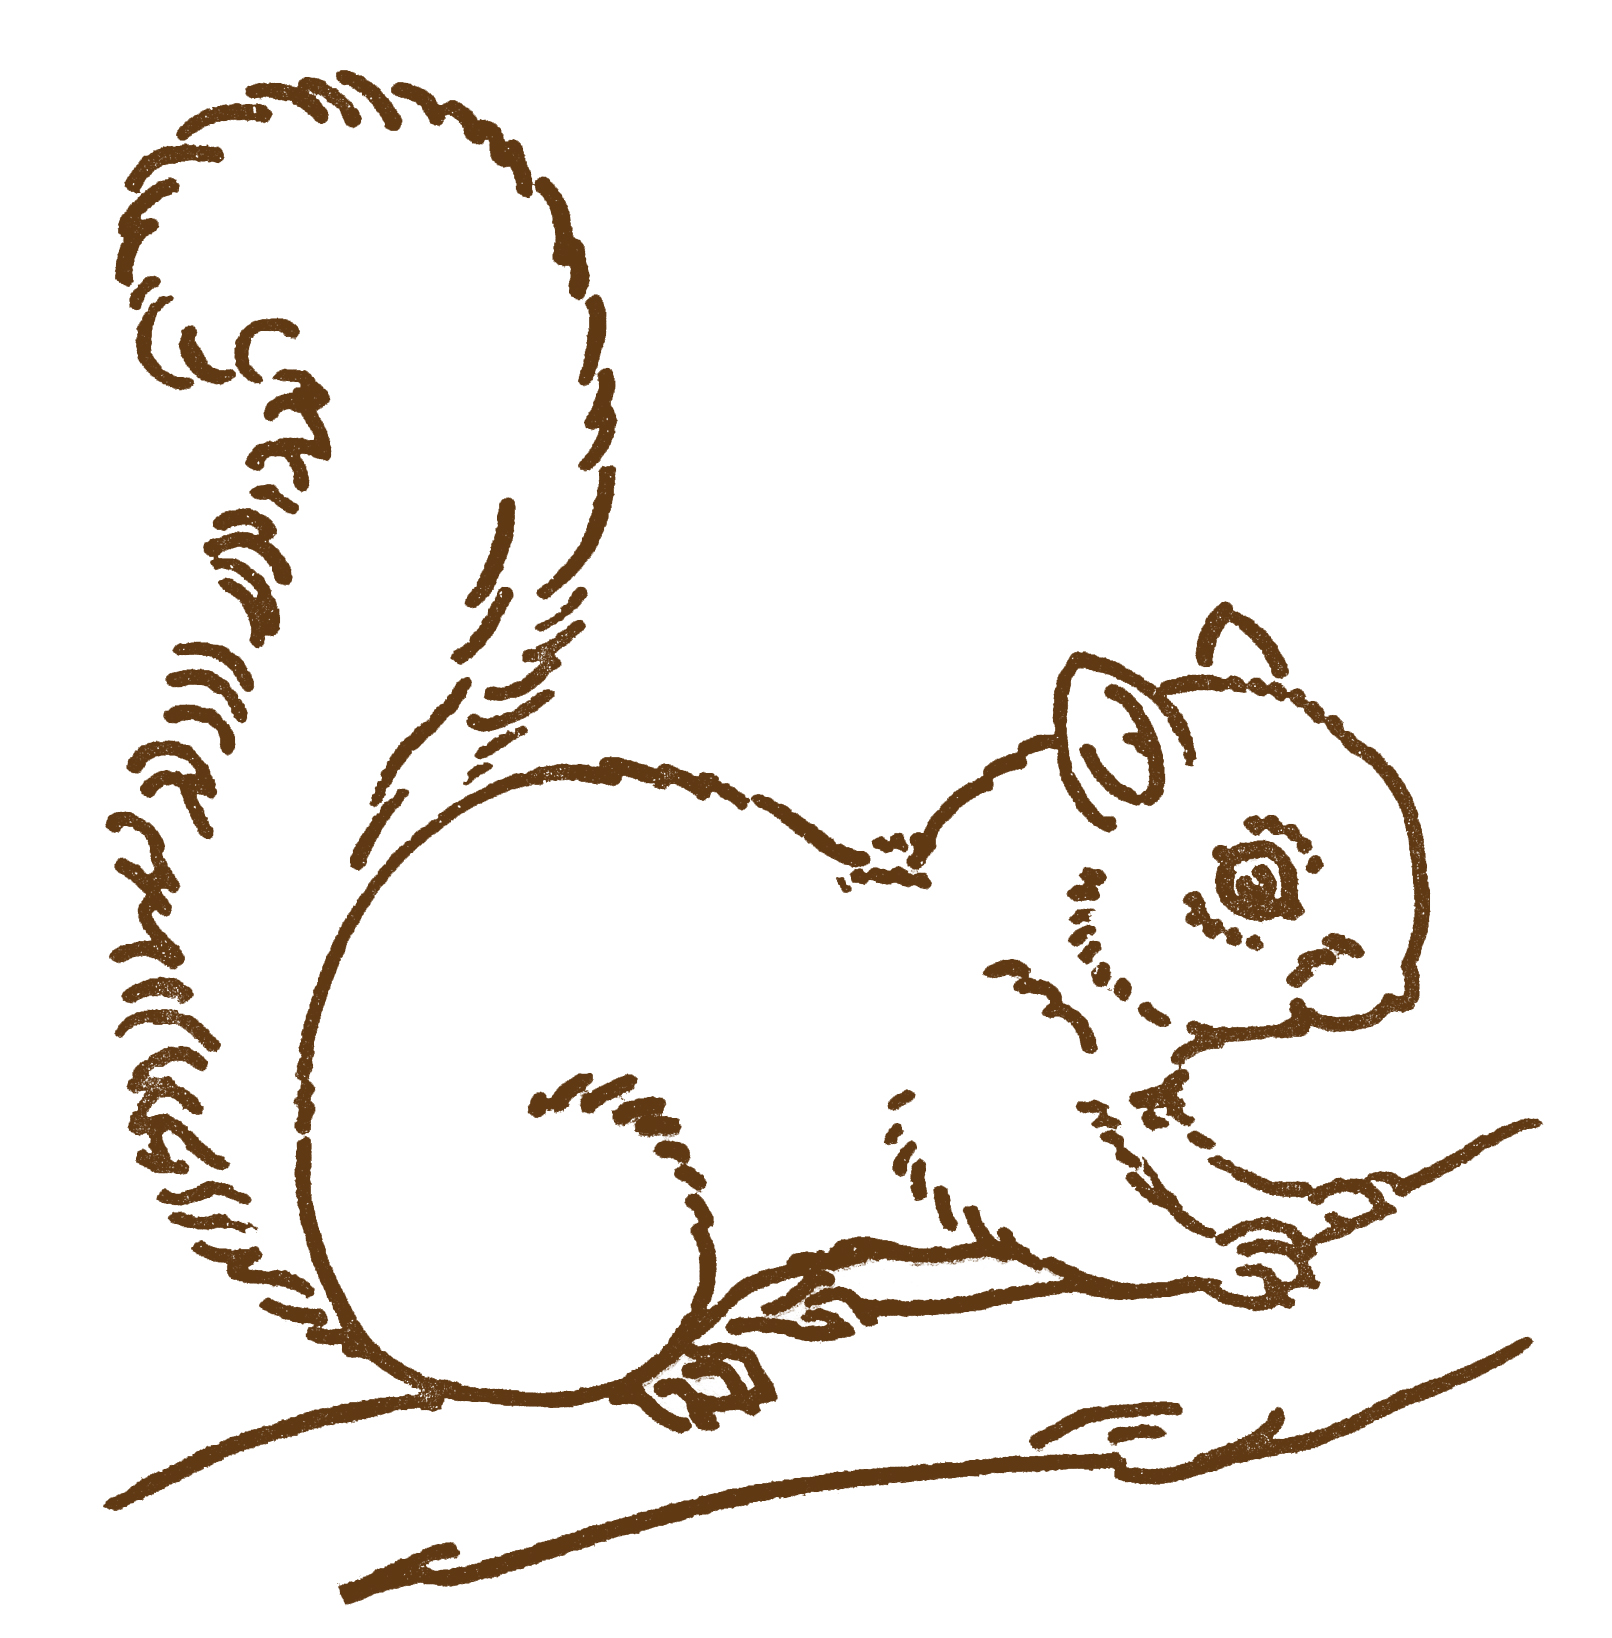 Line Art Work : Free line art images squirrel drawings the graphics fairy